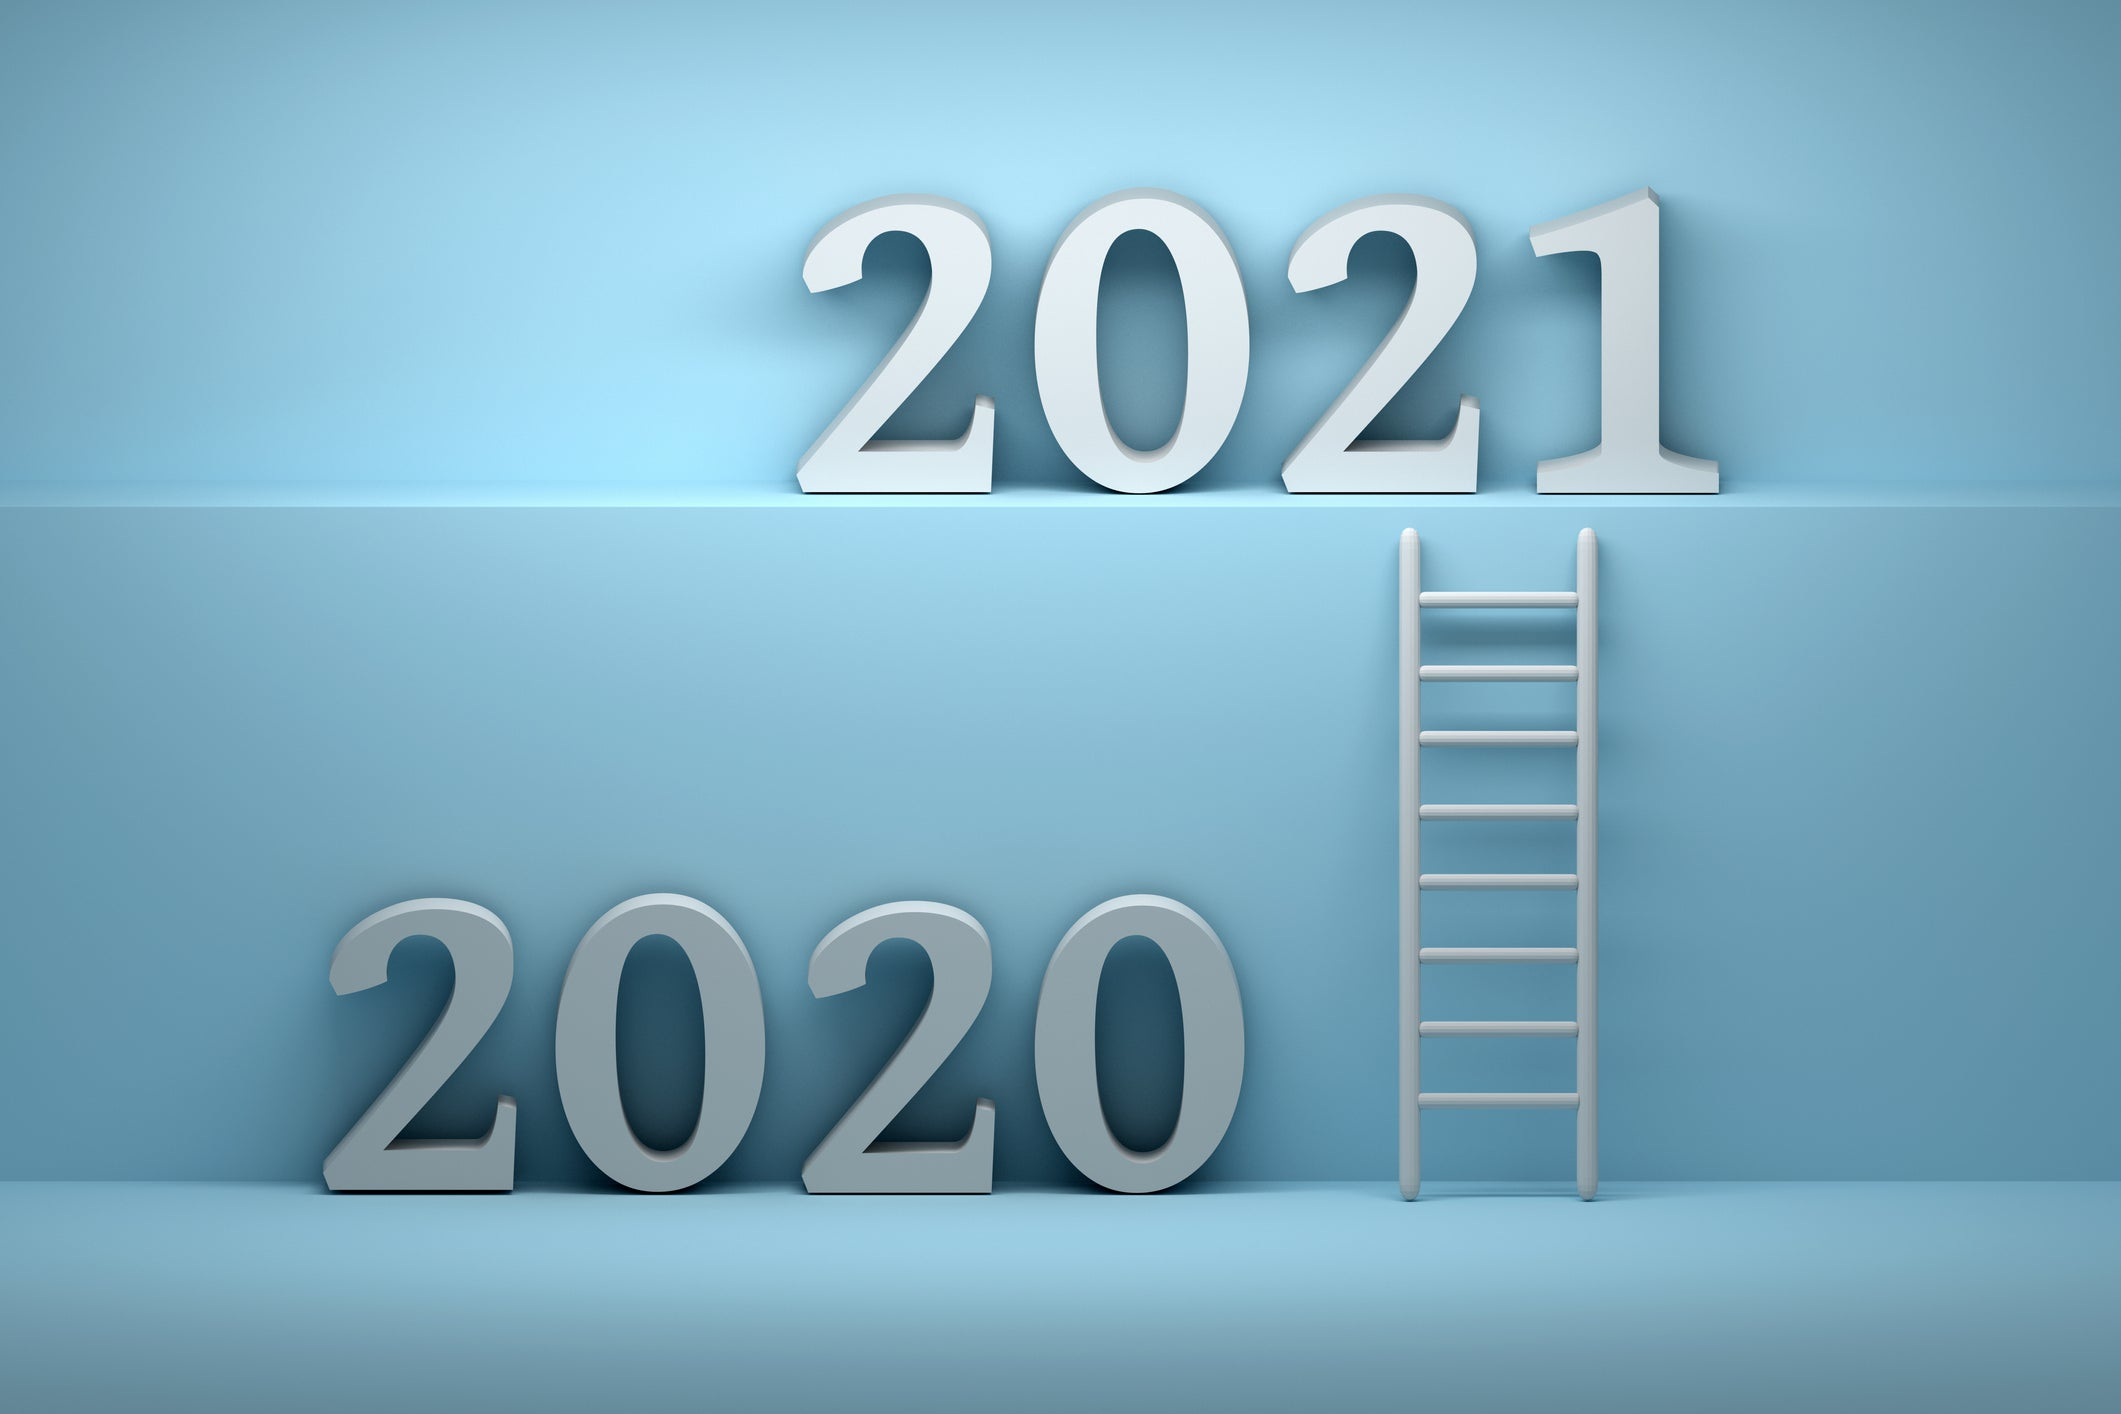 Why Pfizer's Future Looks Better in 2021